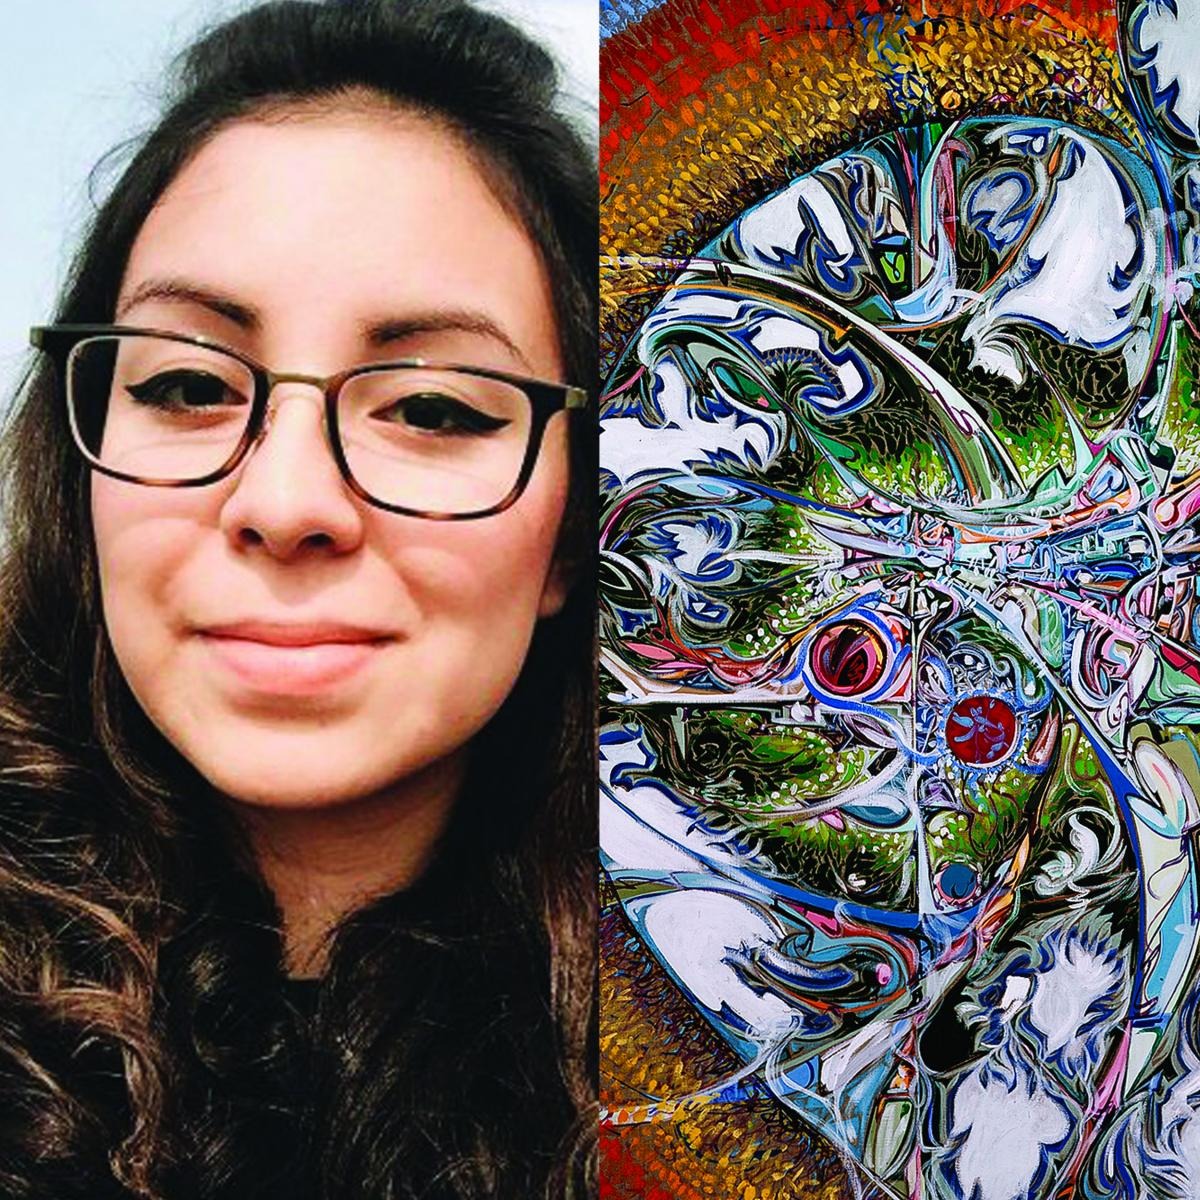 Lauren Crazybull with Janvier artwork